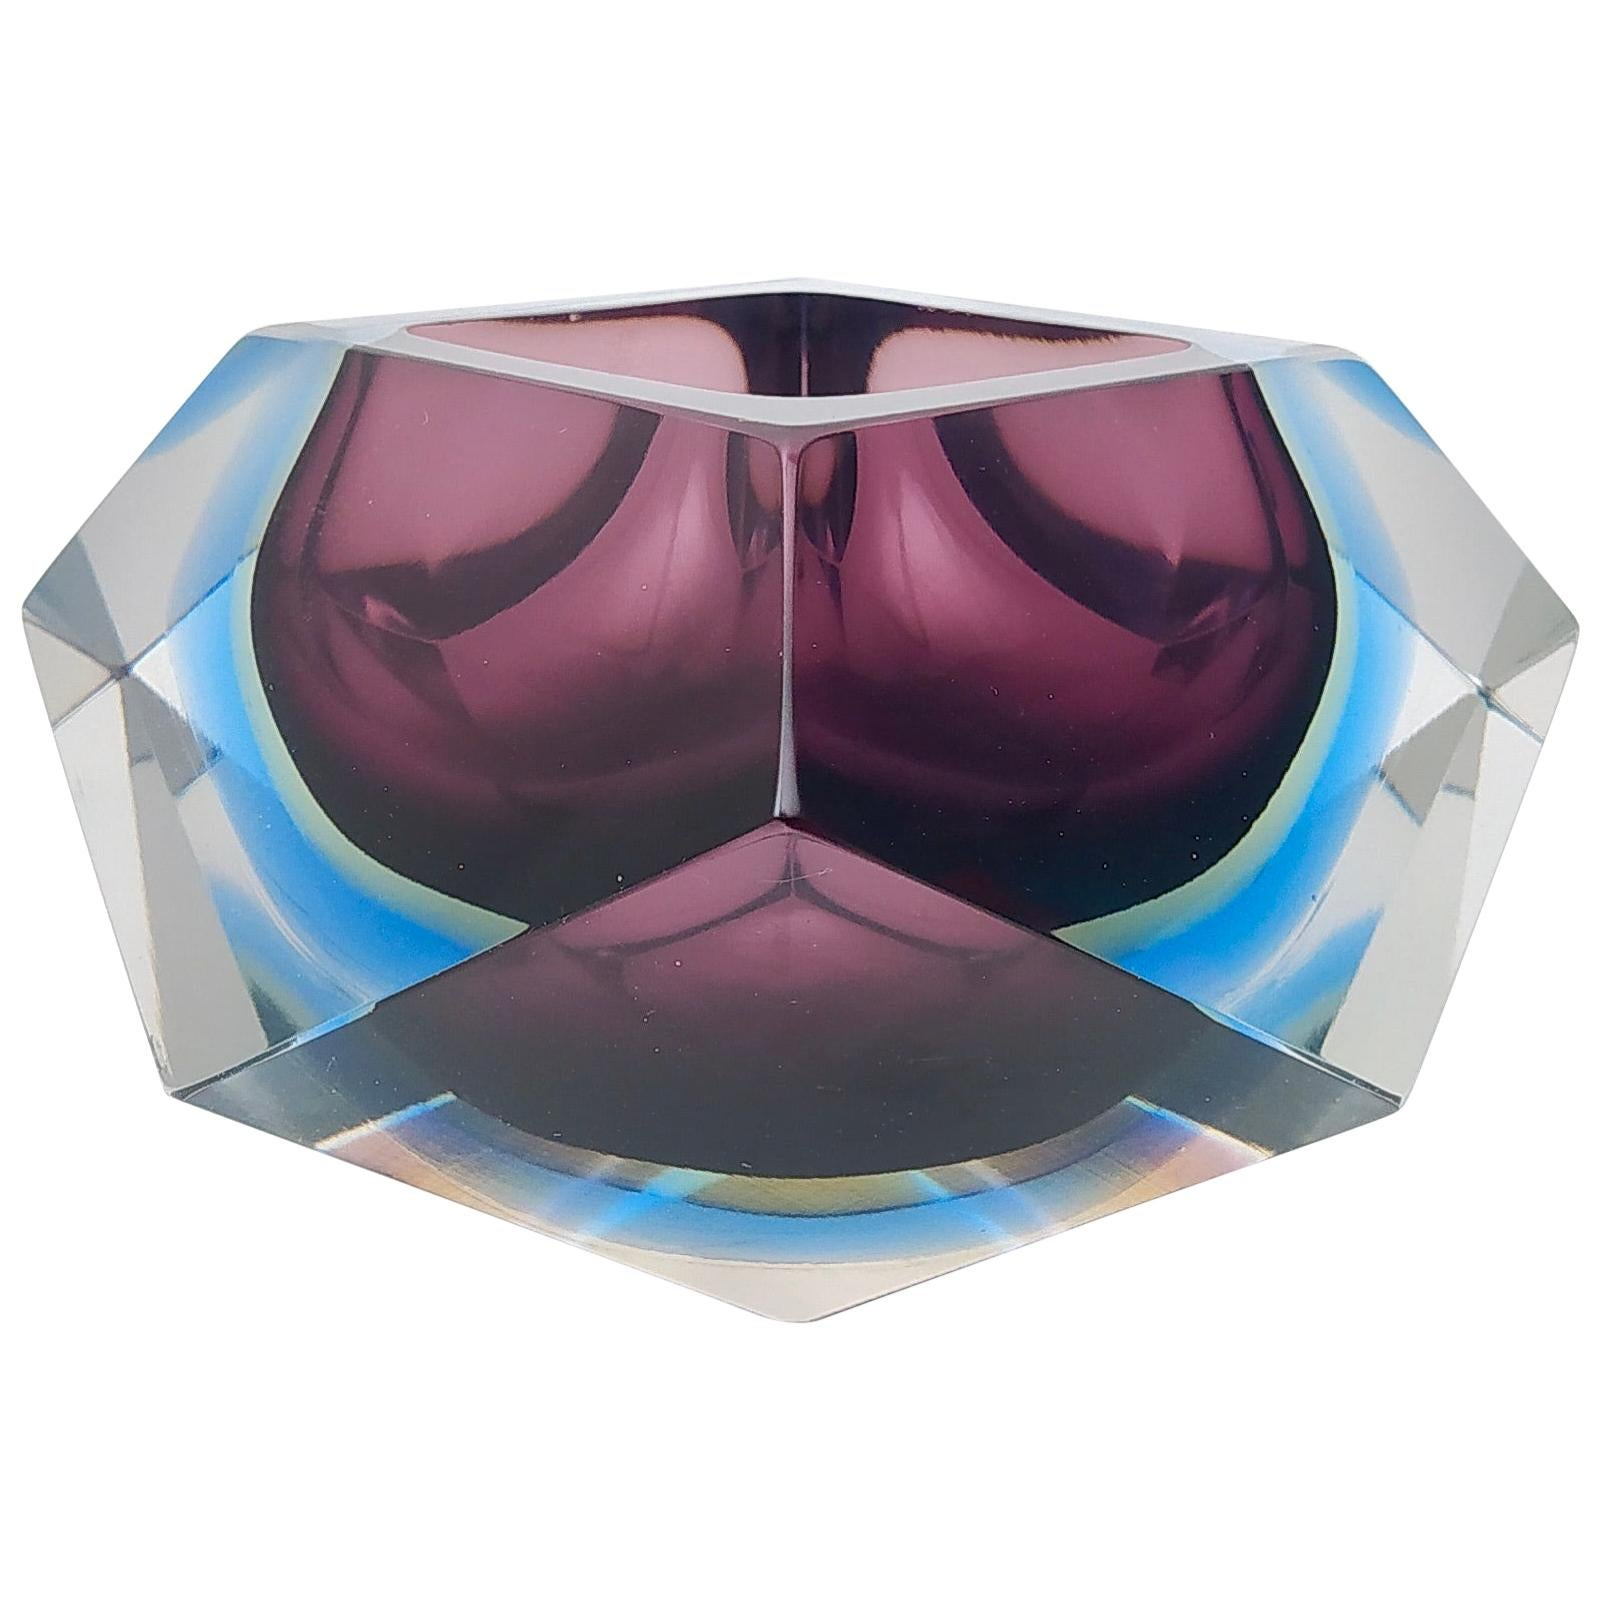 Diamond Shaped Sommerso Glass Ashtray or Catchall by Flavio Poli, Italy, 1960s